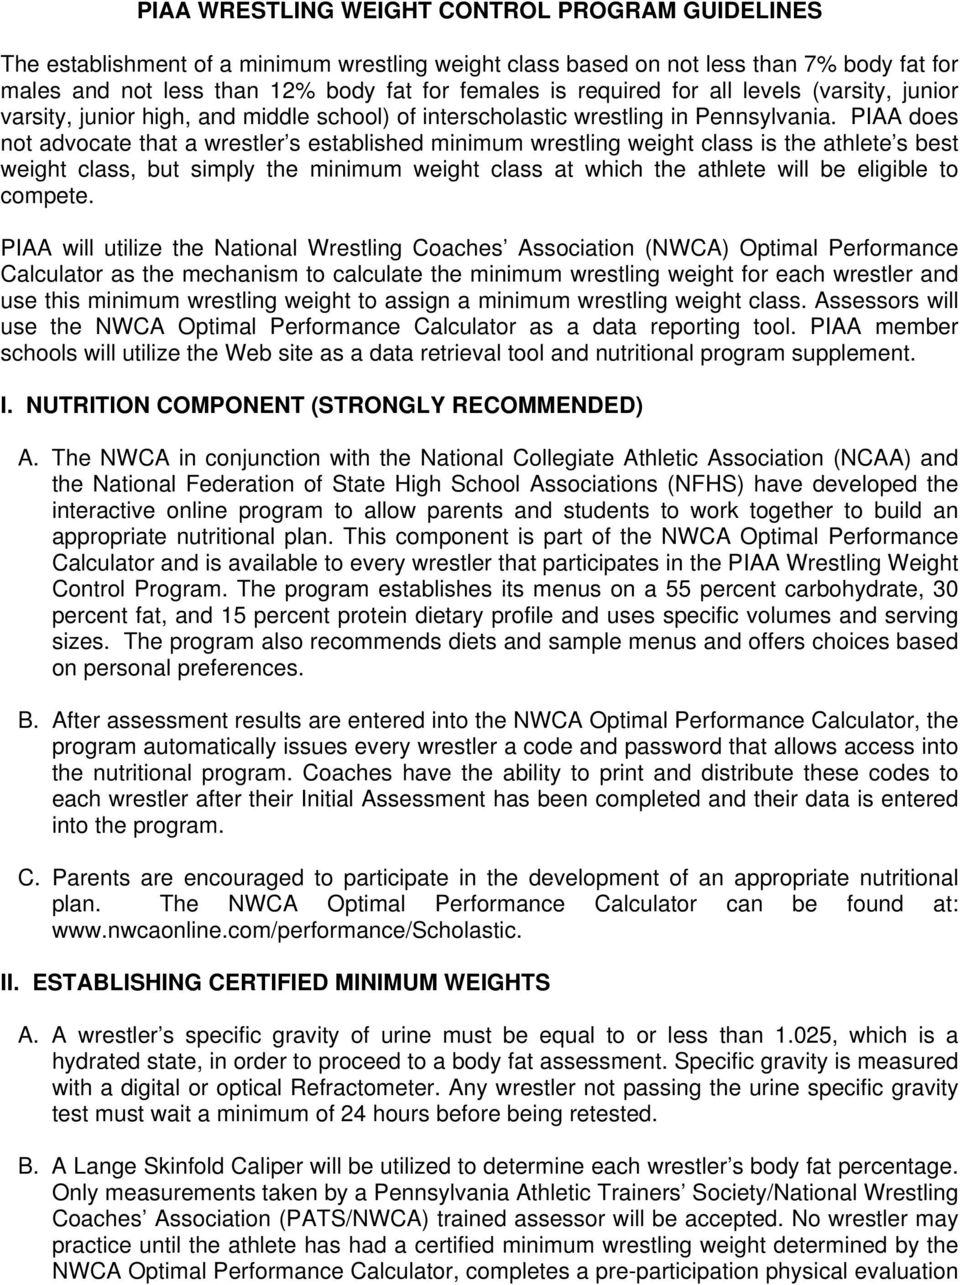 PIAA WRESTLING WEIGHT CONTROL PROGRAM GUIDELINES - PDF